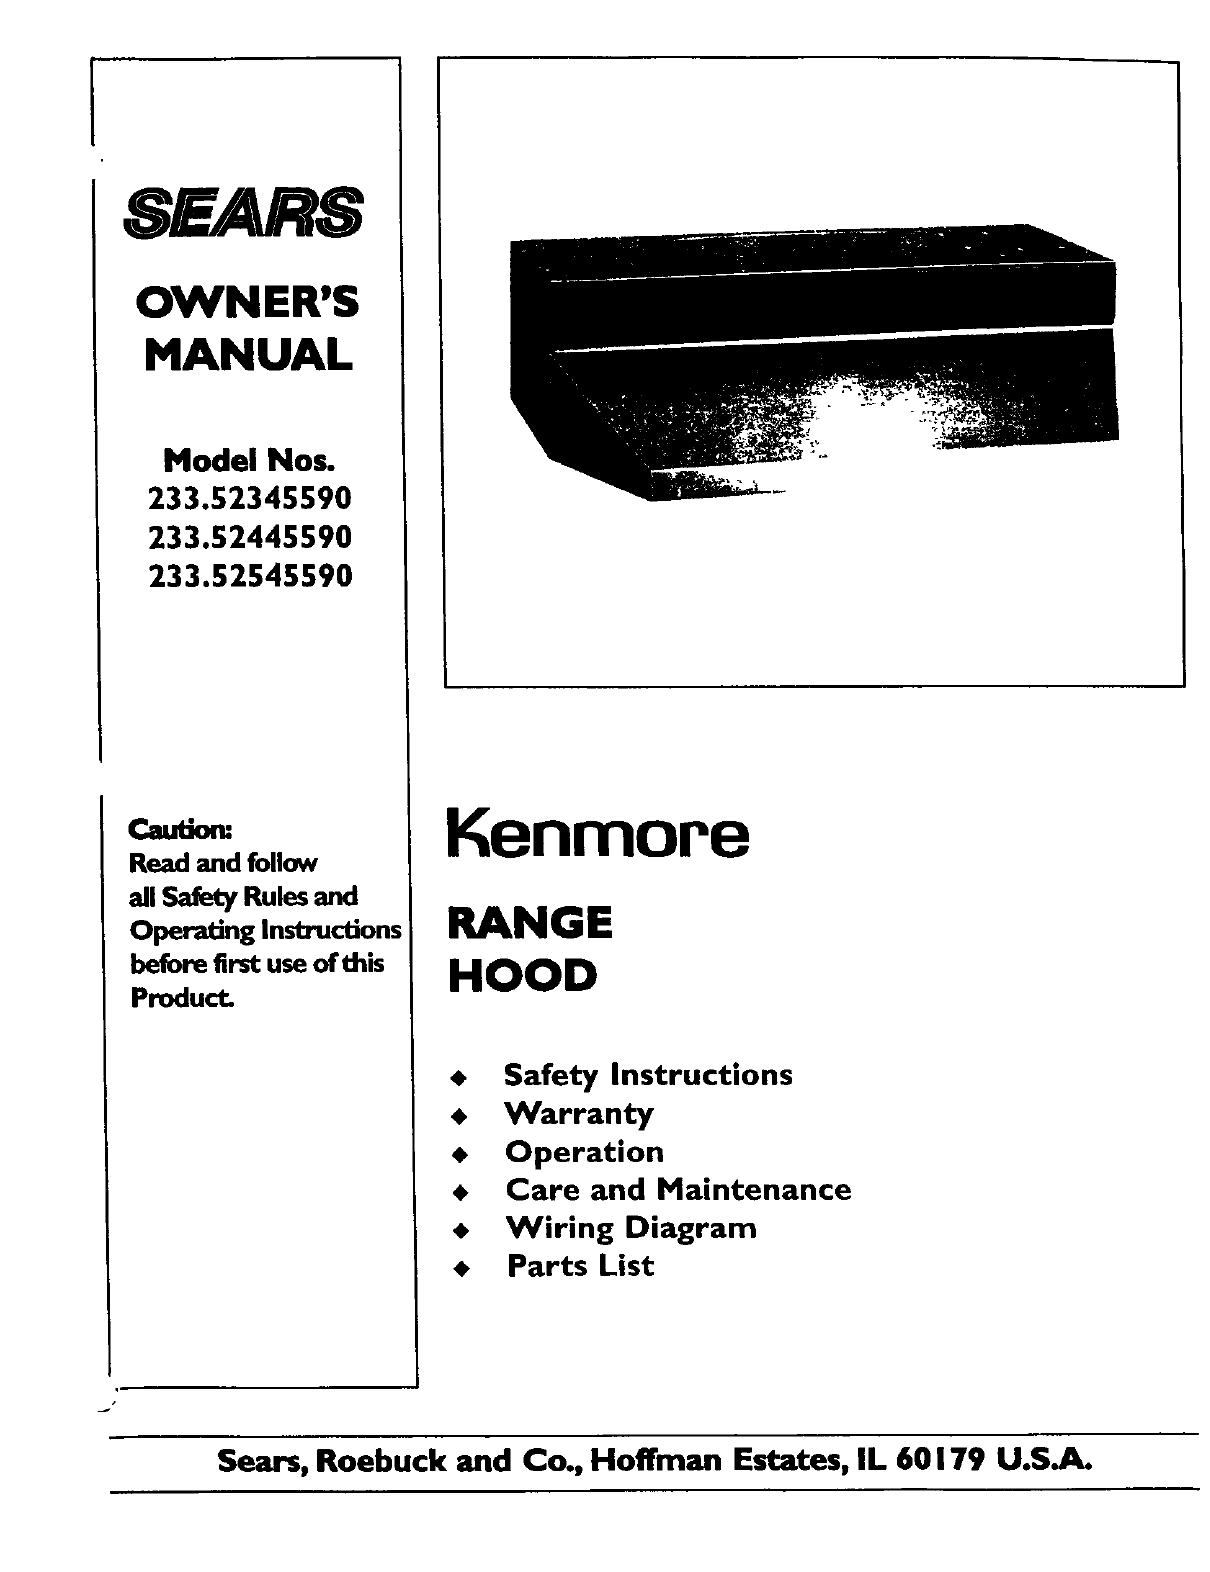 f8eb91af a923 4353 993d 889dfb369cc6 bg1?resize\\\=665%2C864 kenmore oven wiring diagram 363 9378810 kenmore oven error codes kenmore oven wiring diagram at gsmportal.co